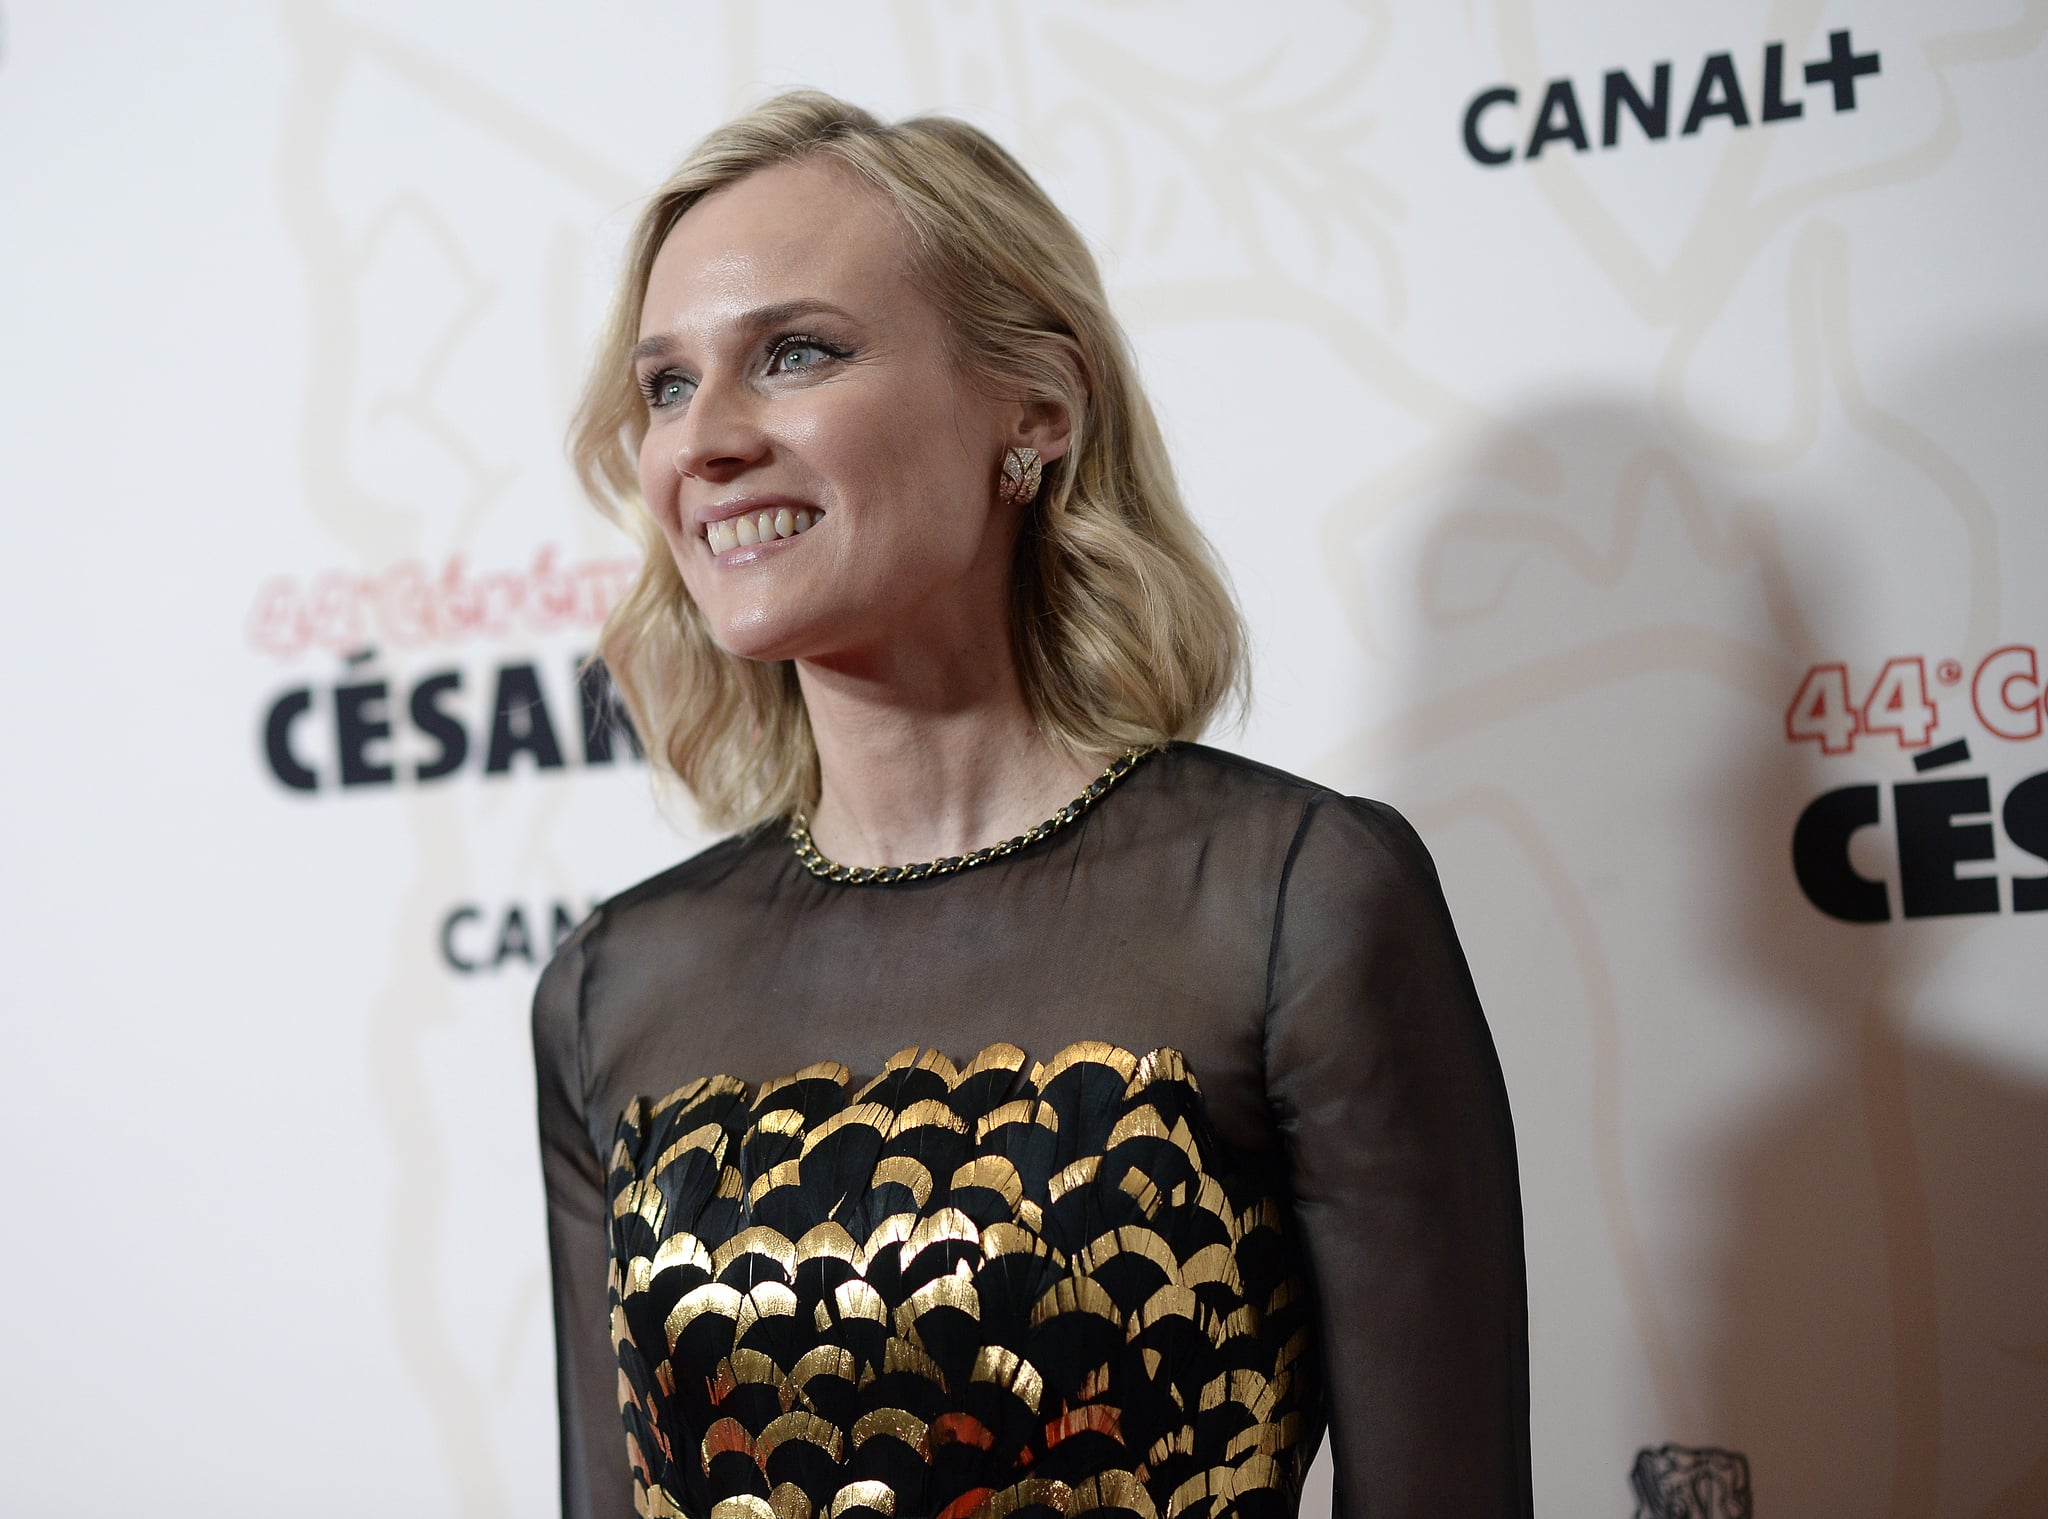 PARIS, FRANCE - FEBRUARY 22: Actress Diane Kruger poses during The Cesar Awards 2019 at Salle Pleyel on February 22, 2019 in Paris, France. (Photo by Francois Durand/Getty Images)